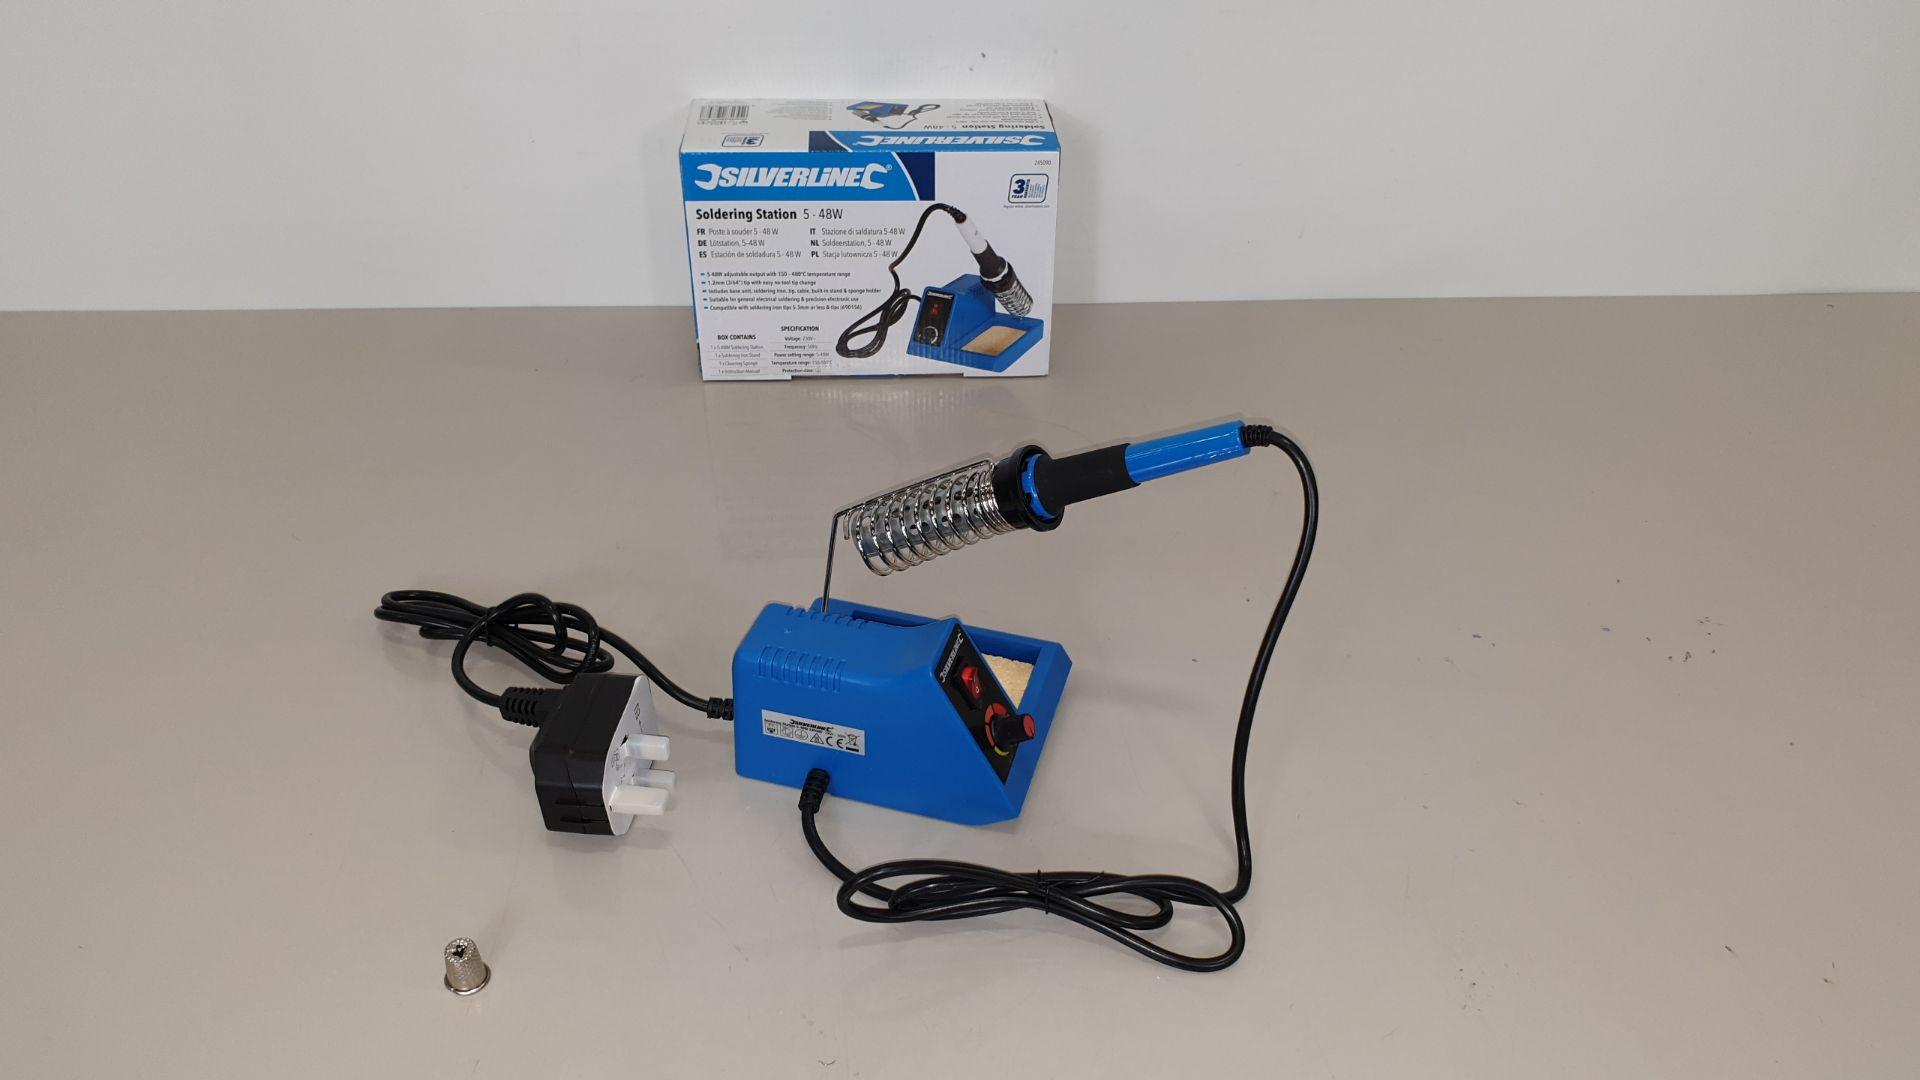 Lot 232 - 20 X BRAND NEW SILVERLINE SOLDERING STATIONS 5-48W (PROD CODE 245090) - TRADE PRICE £31.34 EACH (EXC